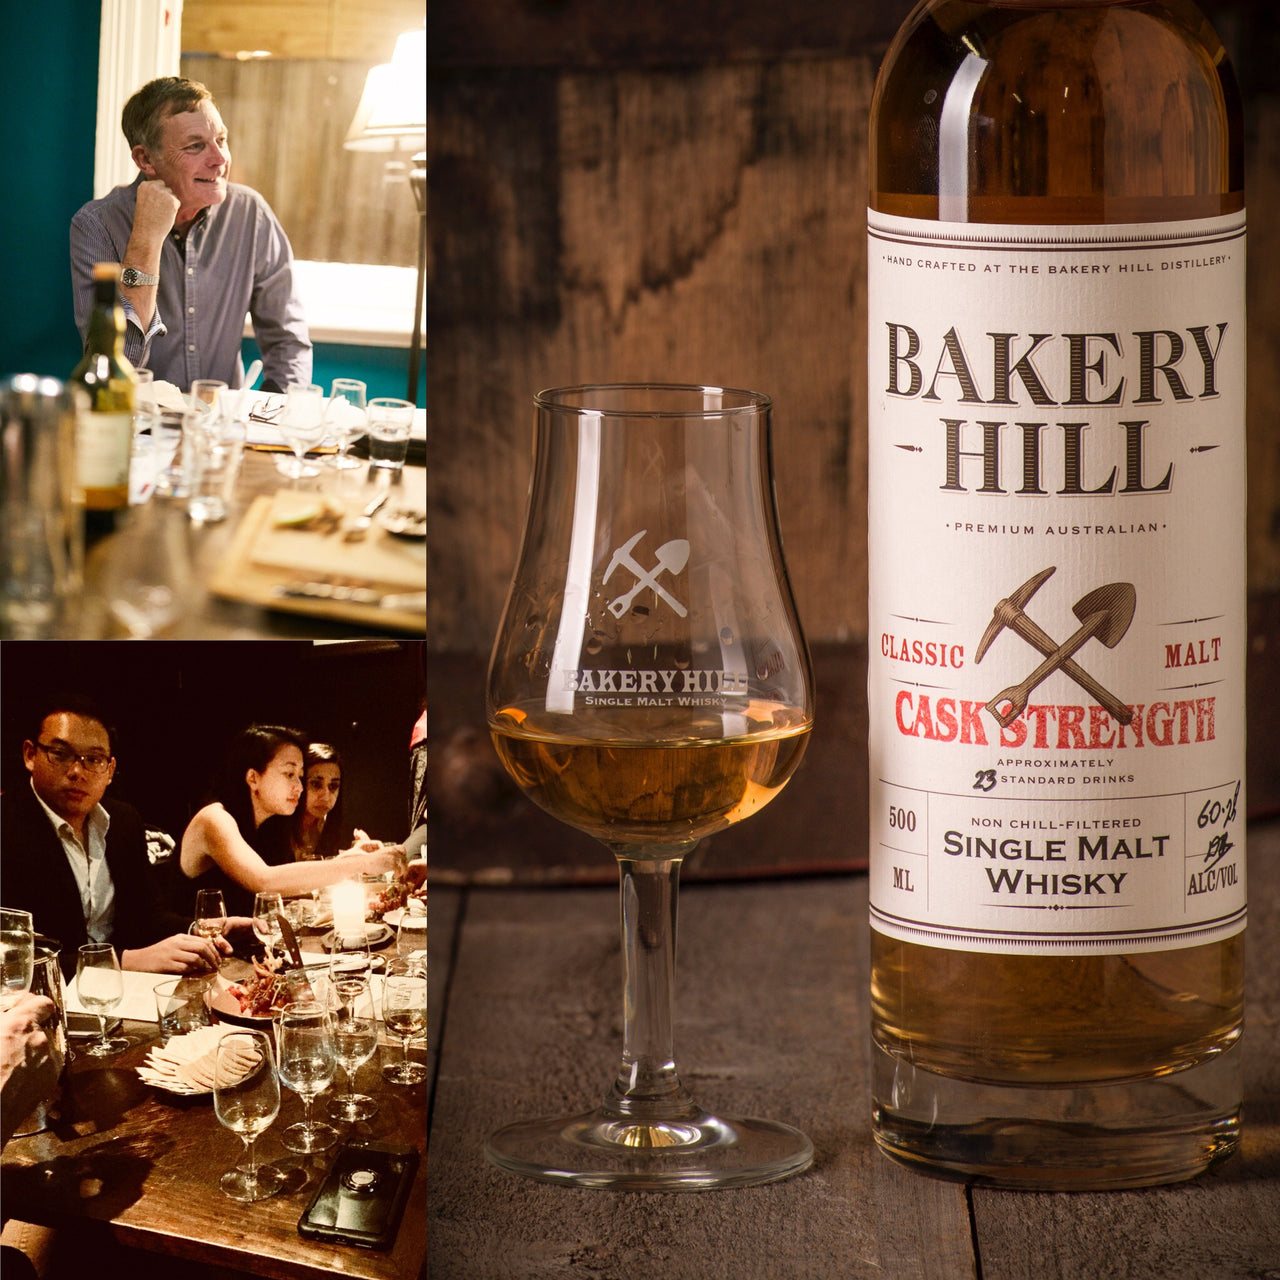 Whisky masterclass & tasting course